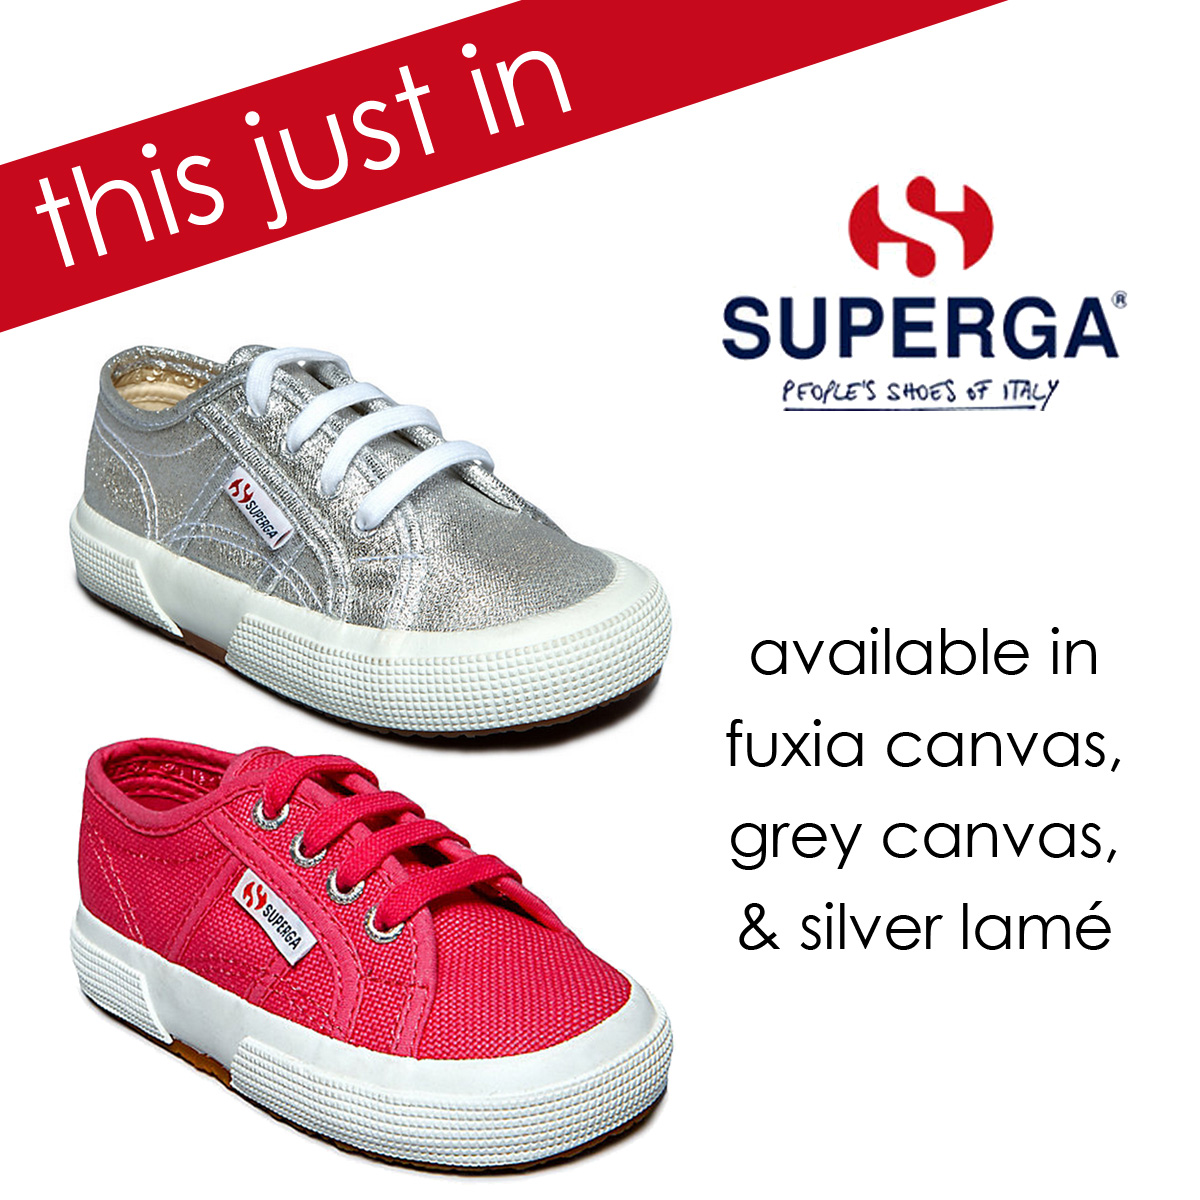 Superga is now available at Sachi